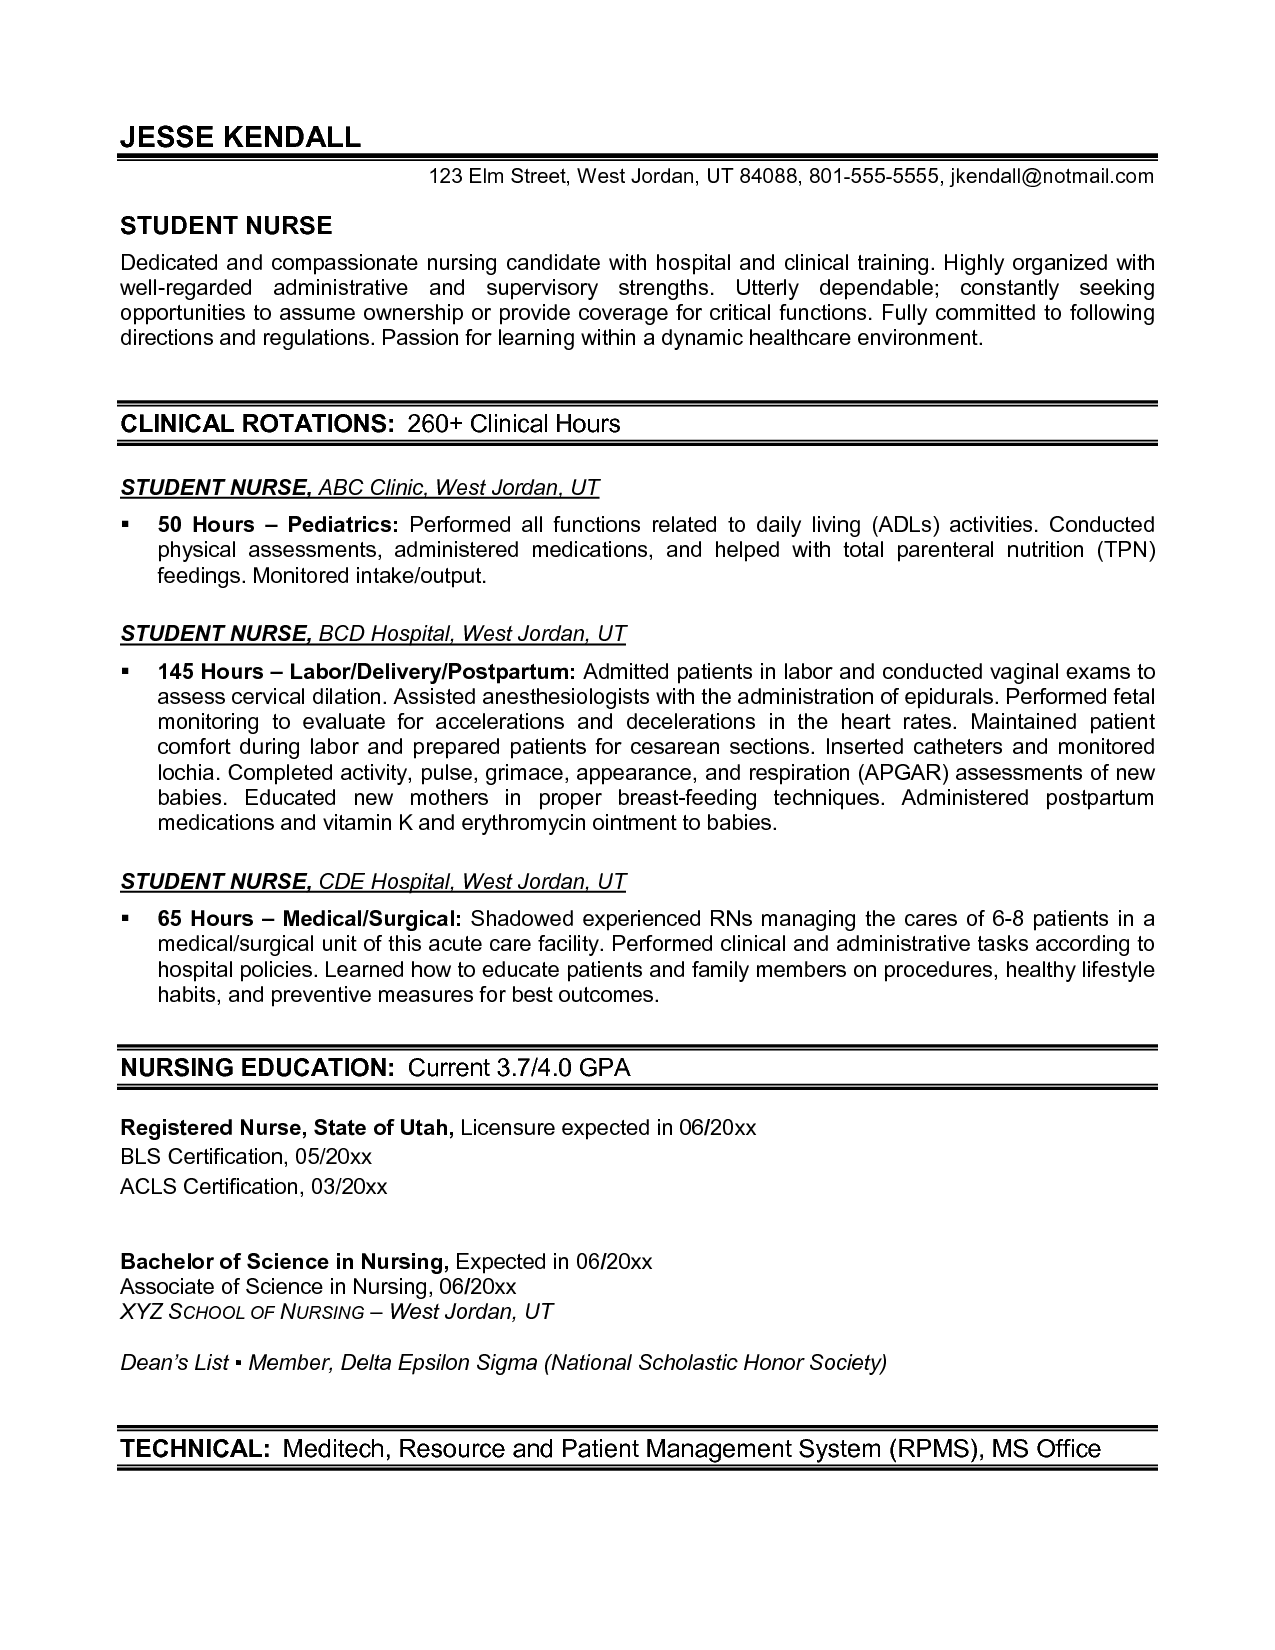 nursing resume template - Professional Nurse Resume Template